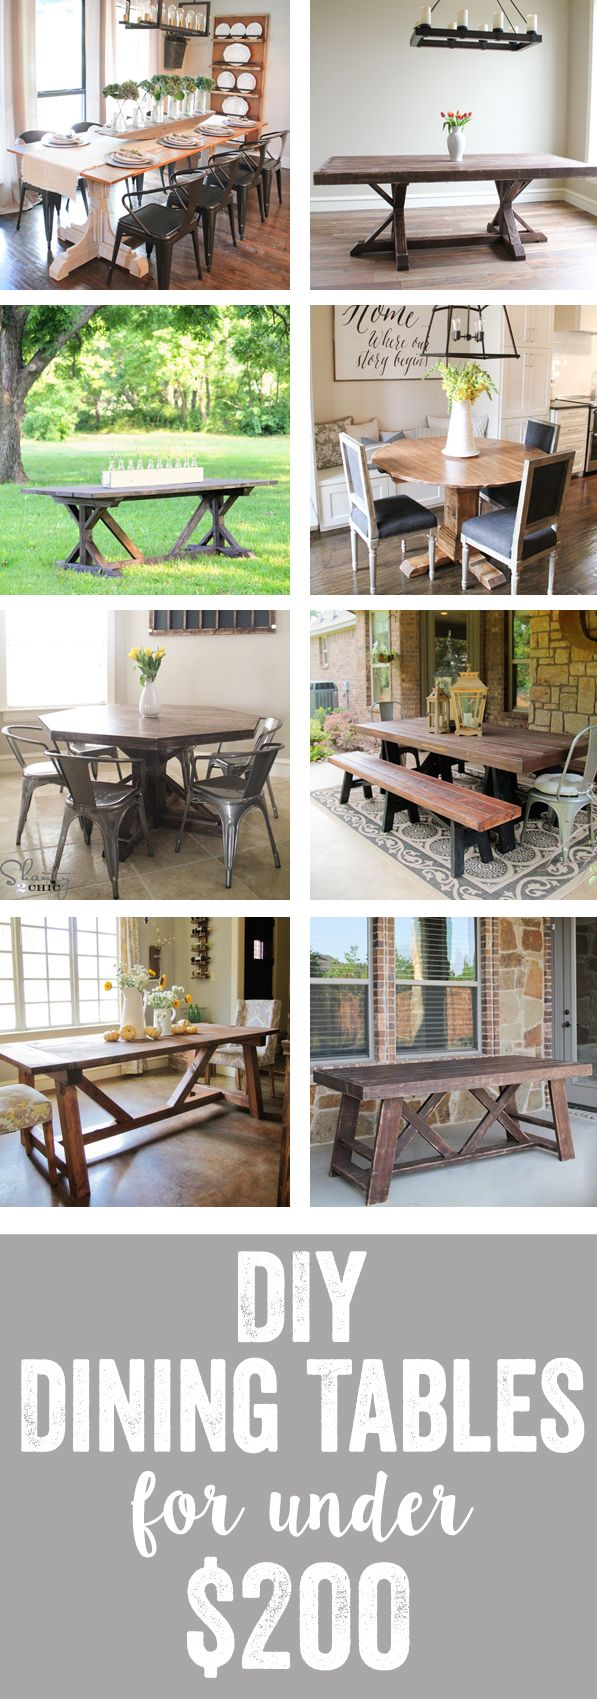 Free Plans with full instructions and tutorials on how to build your own DIY dining table!  There are so many to choose from and each table has a free plan with detailed instruction.  You can build a dining table for a fraction of the cost.  They have plans for dining tables, kitchen tables, outdoor tables and more.  This is a great website for woodworking, decorating and DIY!  Free plans and full tutorial at www.shanty-2-chic.com!